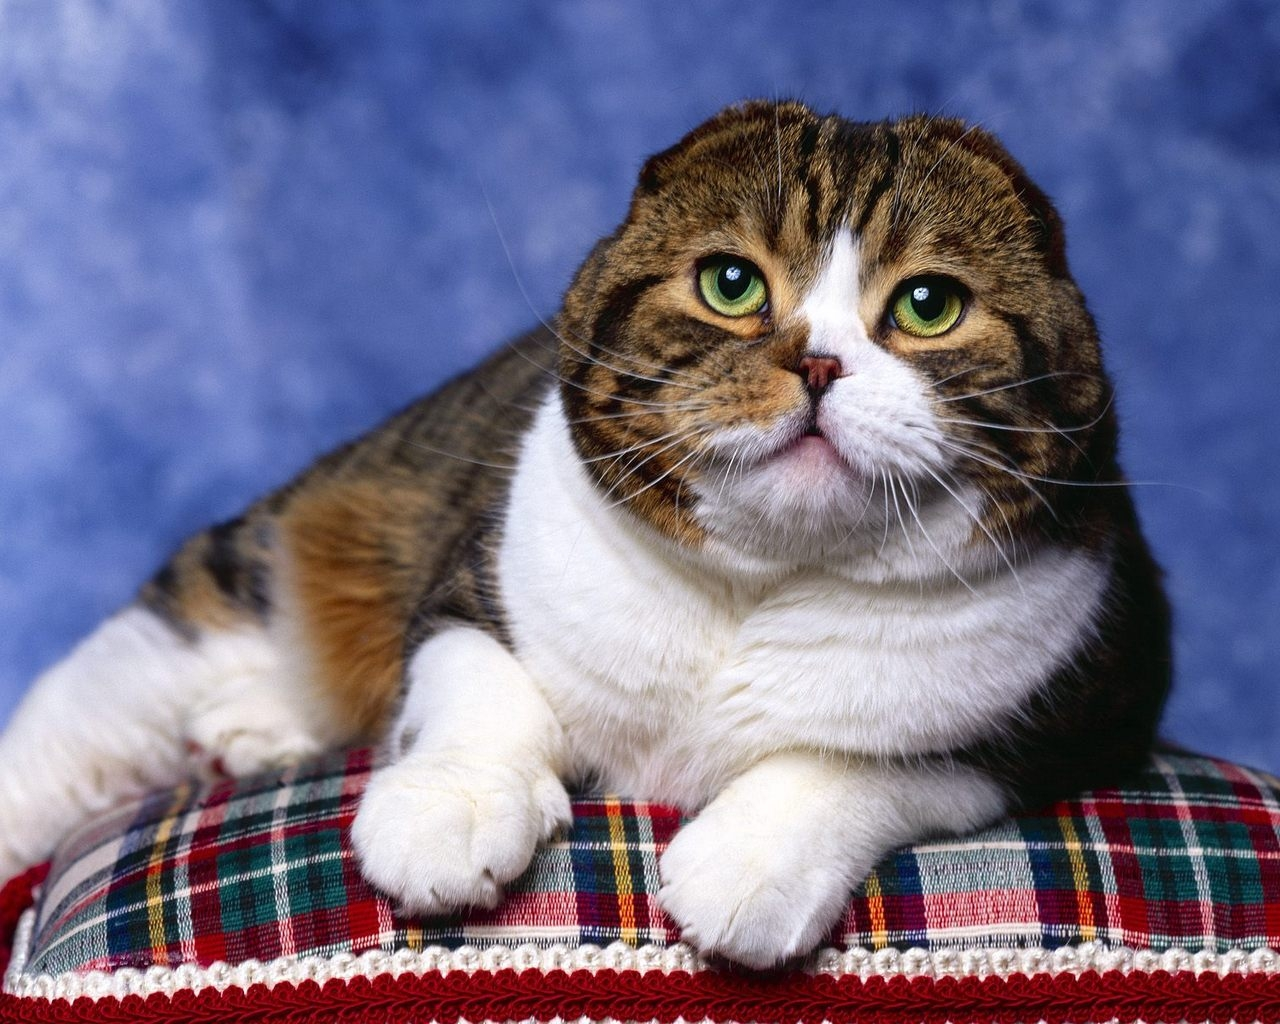 Scottish Fold Cat Photo Shoot for 1280 x 1024 resolution